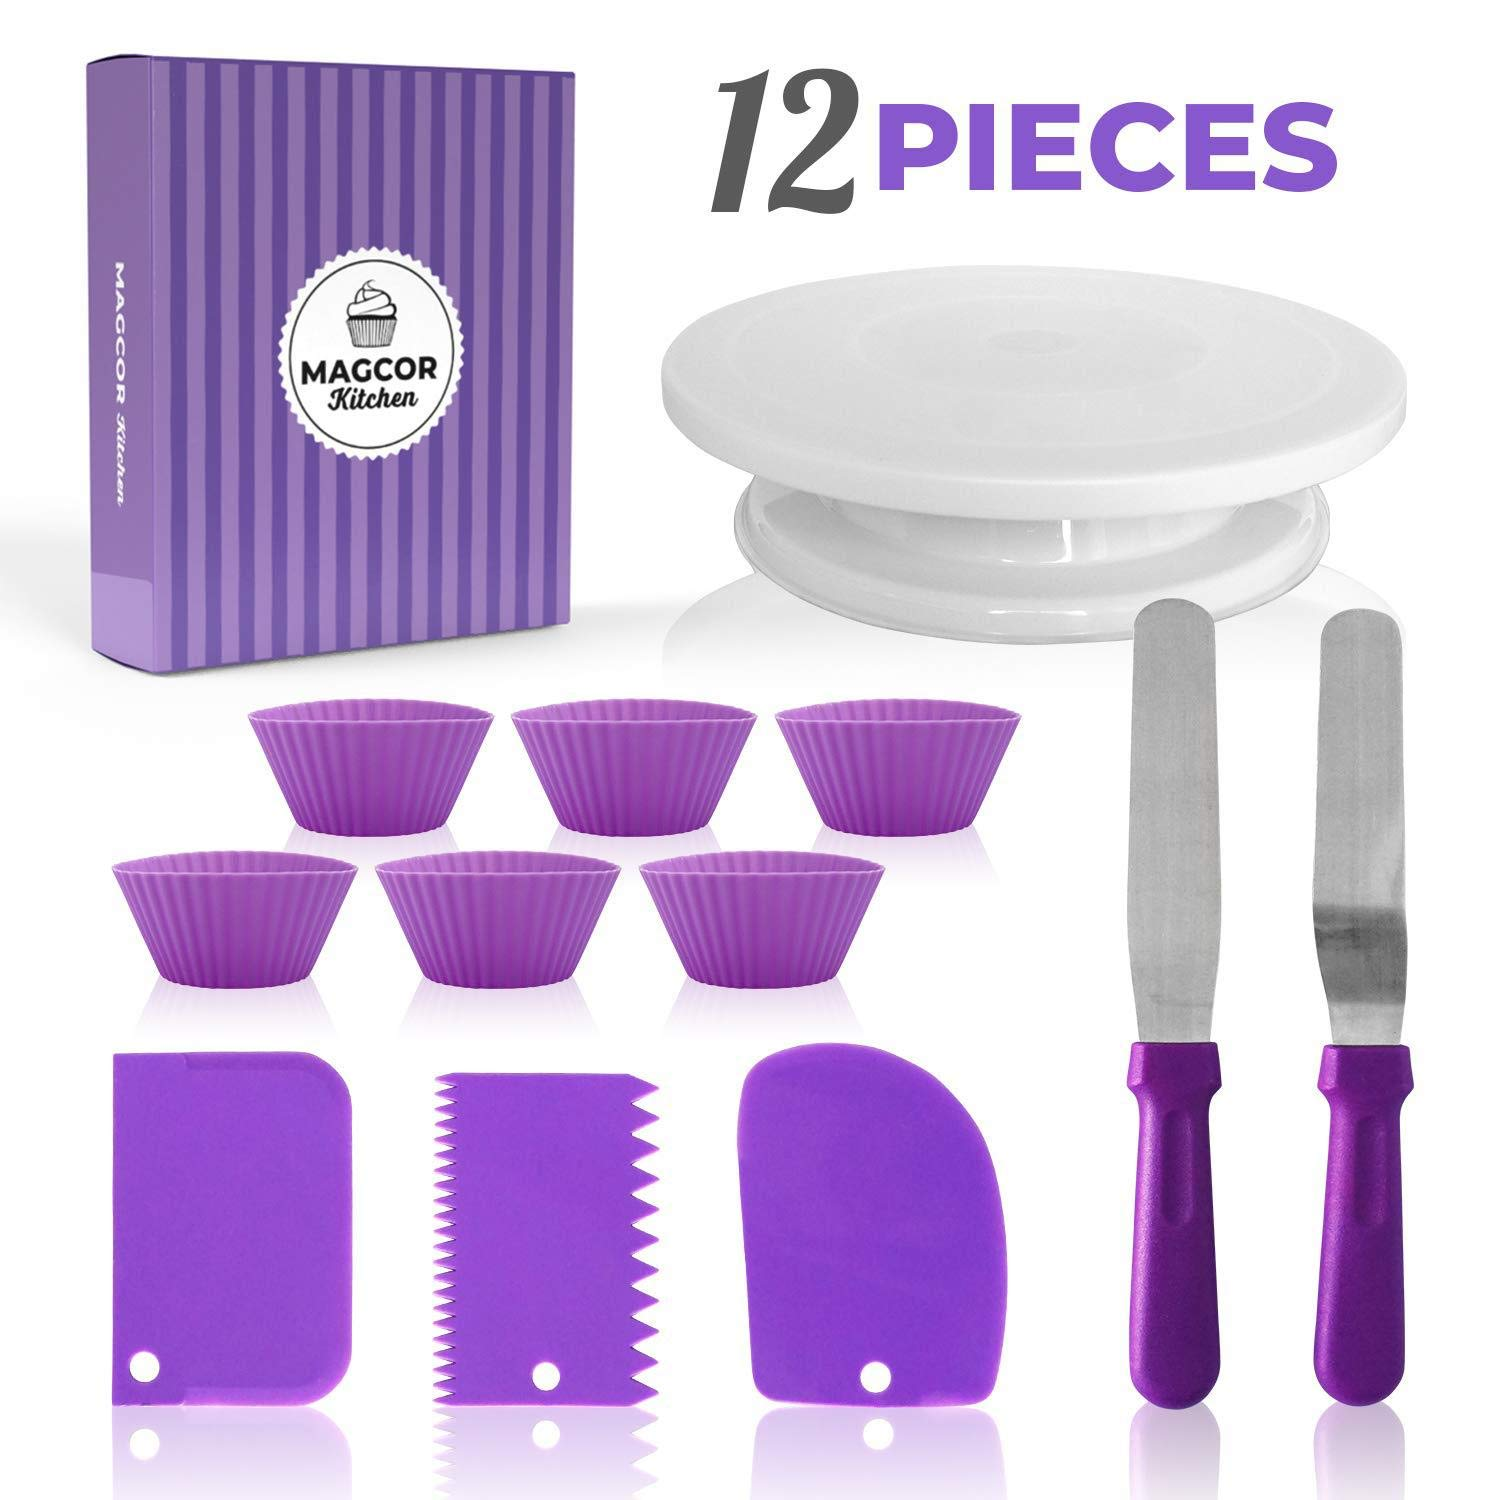 Whryspa Cake Decorating Kit Supplies with Revolving Cake Turntable,Silicon Spatula and Cake Server/Cutter Baking Cake Decorating Supplies,12pieces